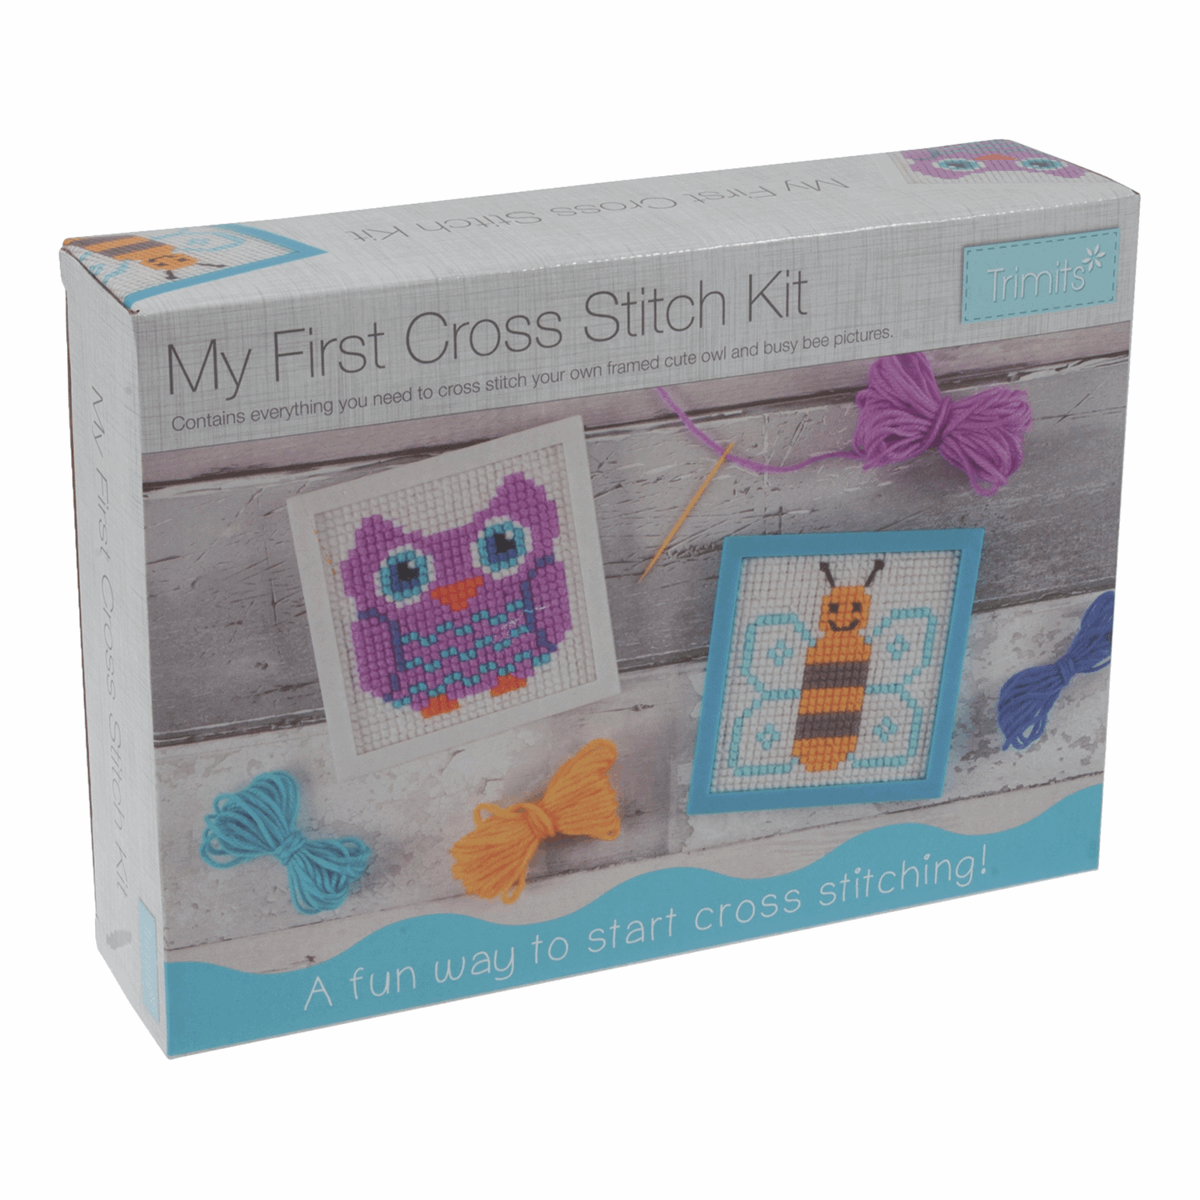 My First Cross Stitch Kit - Owl and Bee by Trimits